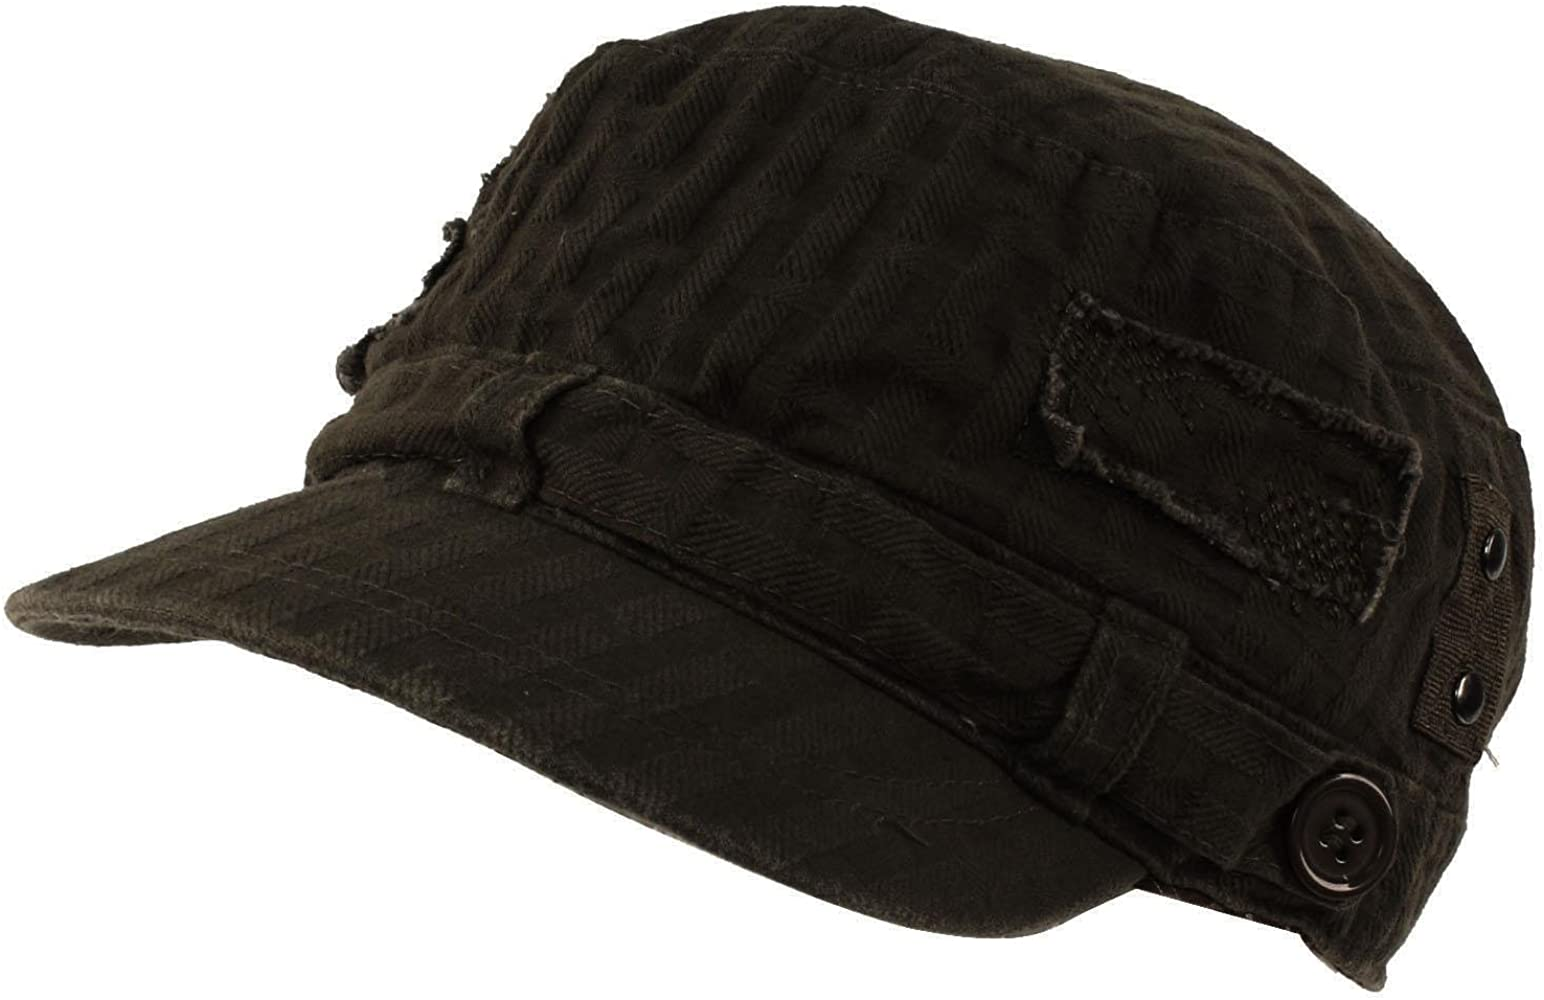 88b3b1d0 D&Y Unisex Distressed Patched Button Waffle Cadet Military Cap, Black